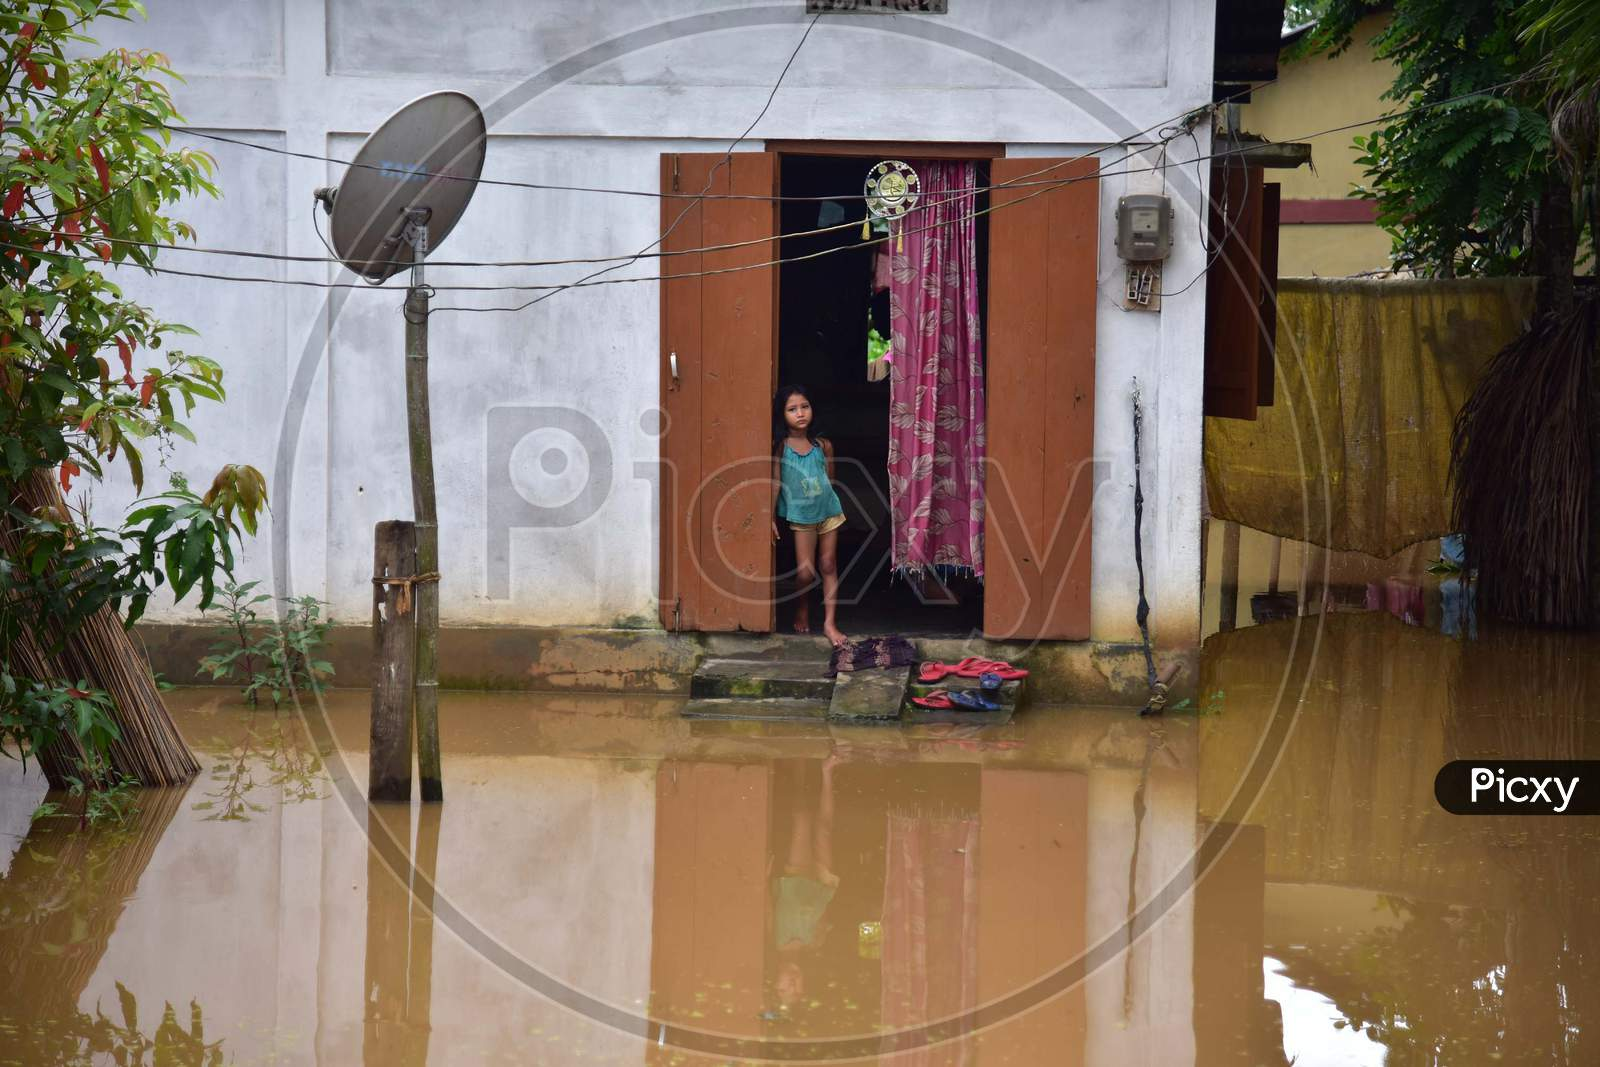 A girl stands near the door of her partially submerged house in a flood-affected village in Nagaon, Assam on July 22, 2020